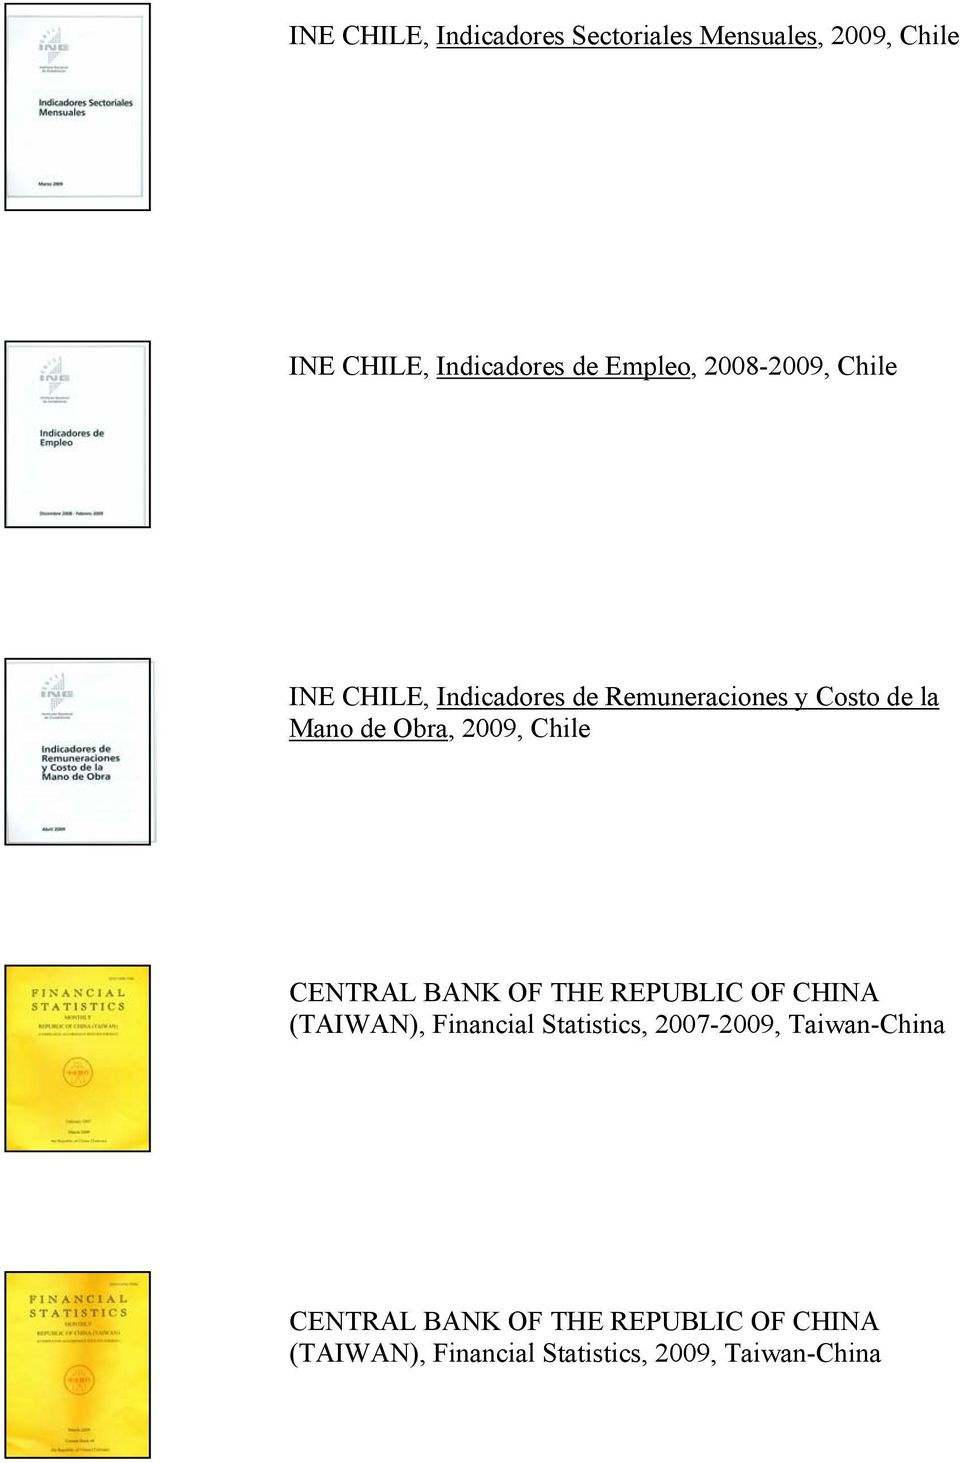 Chile CENTRAL BANK OF THE REPUBLIC OF CHINA (TAIWAN), Financial Statistics, 2007-2009,